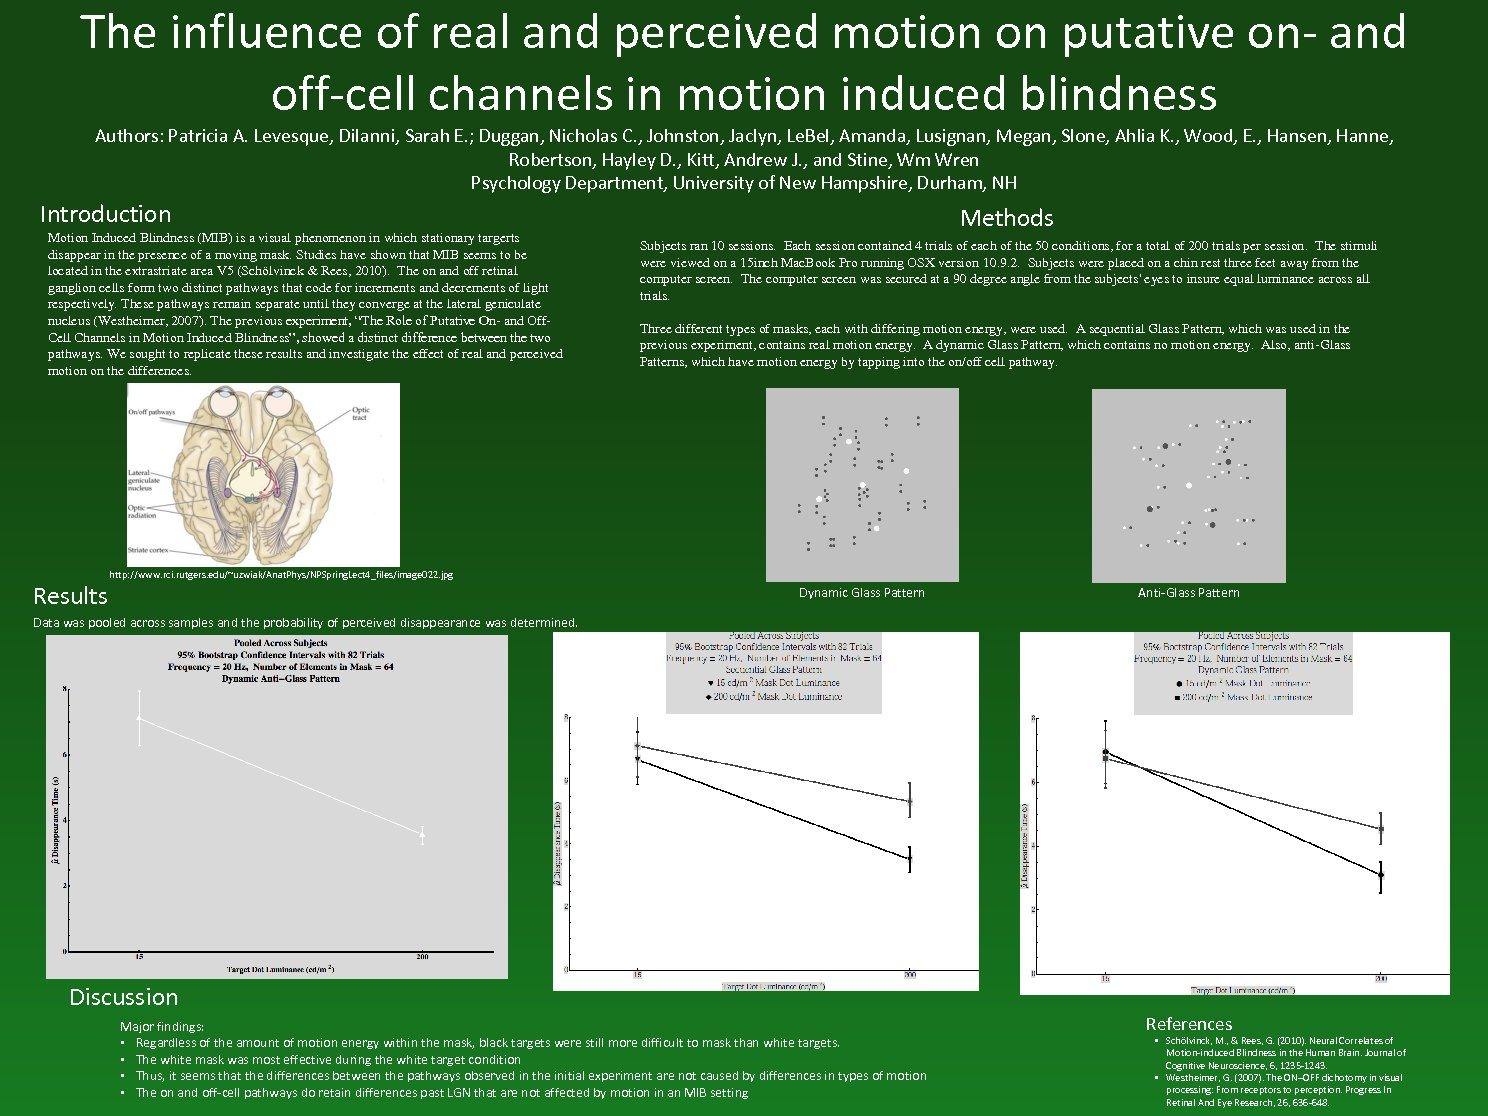 The Influence Of Real And Perceived Motion On On And Off-Cell Channels In Motion Induced Blindness by pah48